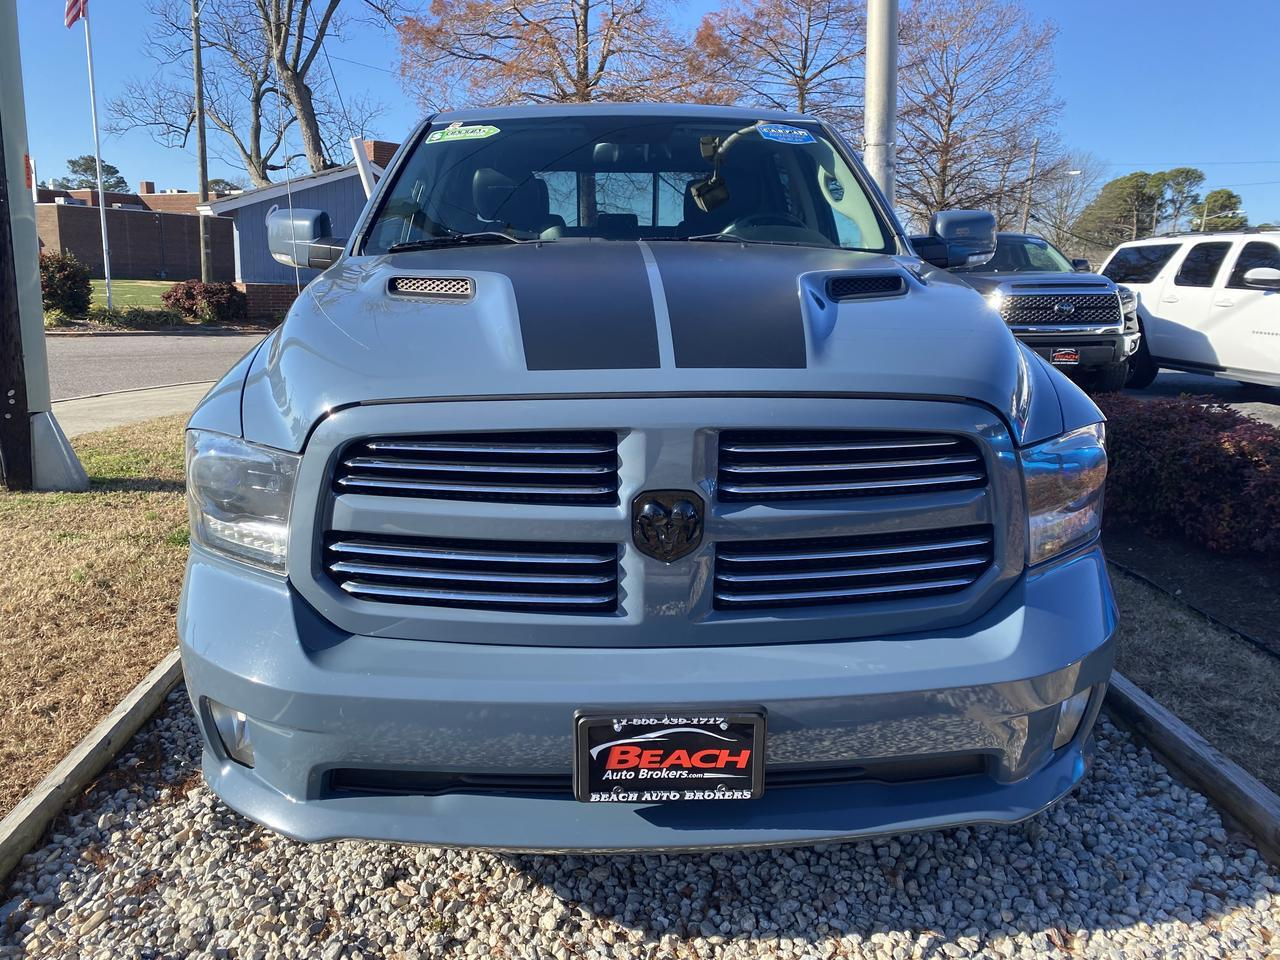 2015 DODGE RAM 1500 SPORT CREW CAB 4X4, WARRANTY, LEATHER, NAV, HEATED SEATS,  SUNROOF,  AUX/USB PORT, RARE COLOR! Norfolk VA